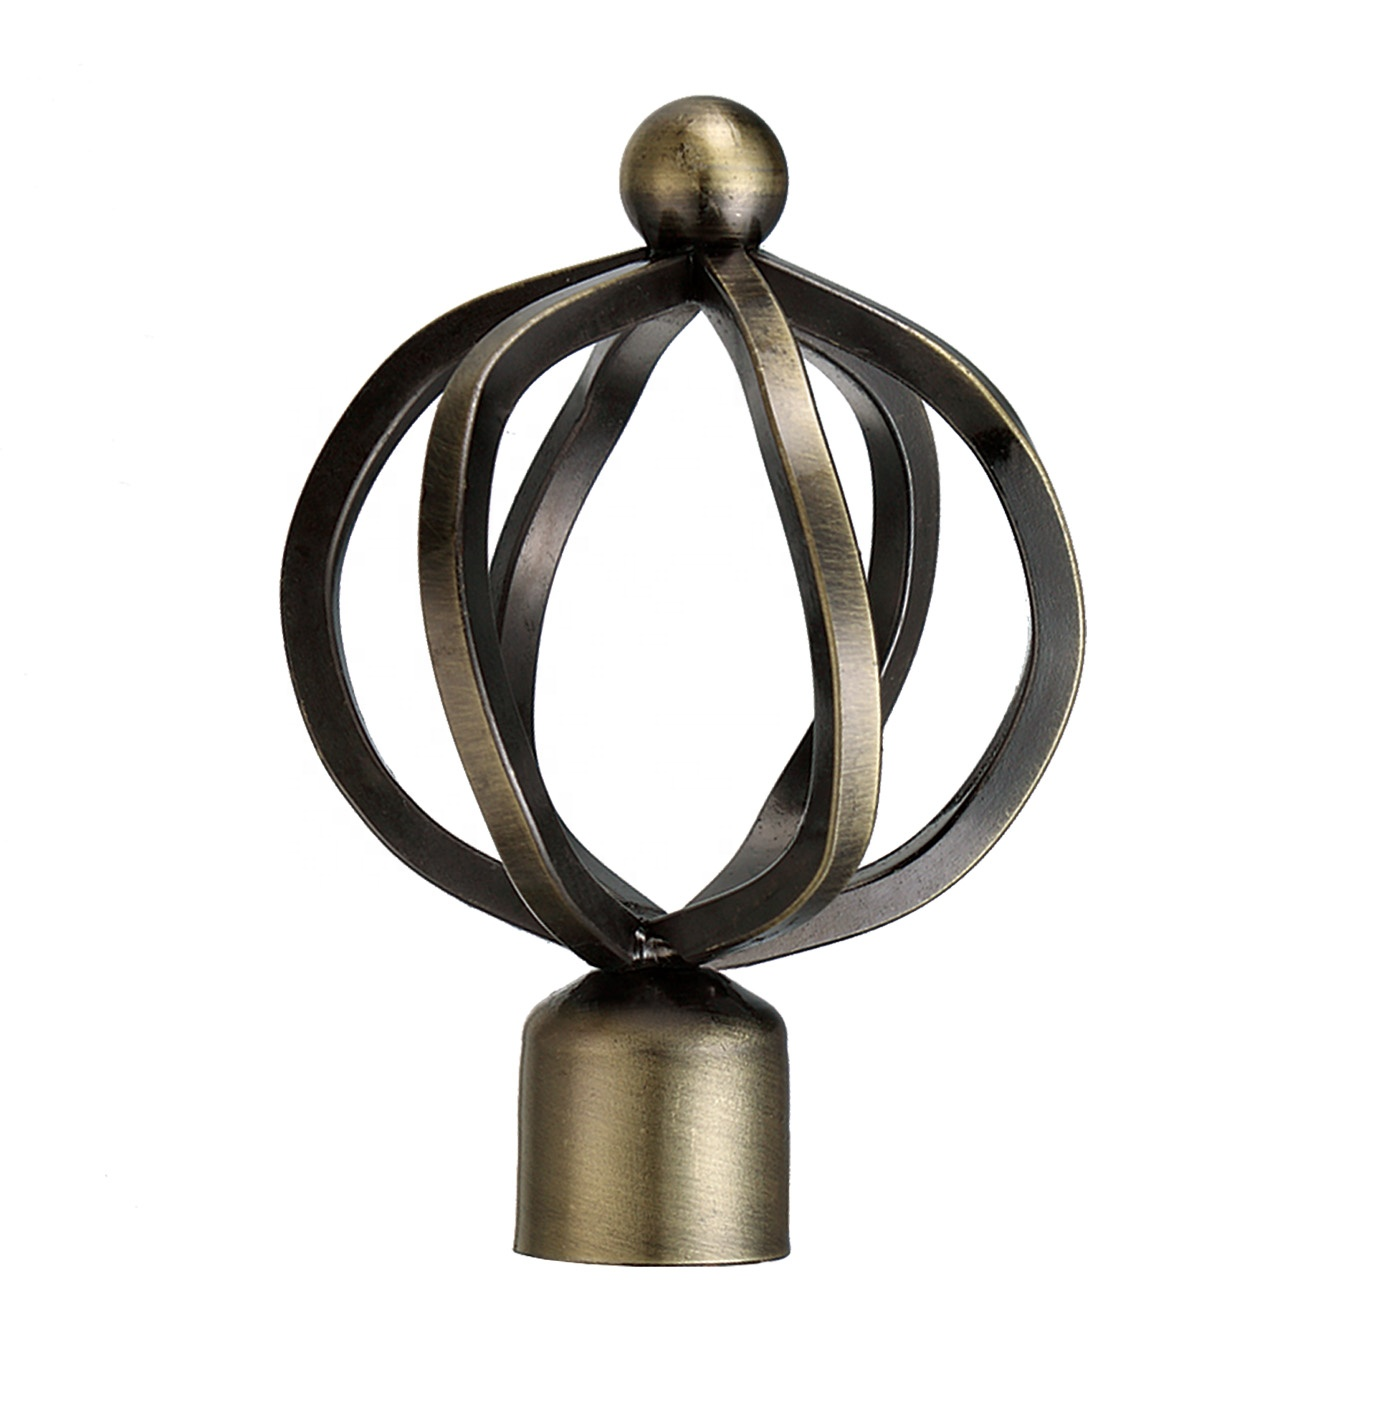 16 years factory directly sale wholesale window finials decorative curtain rod caps curtain rod accessories buy bronze curtain rod finials for